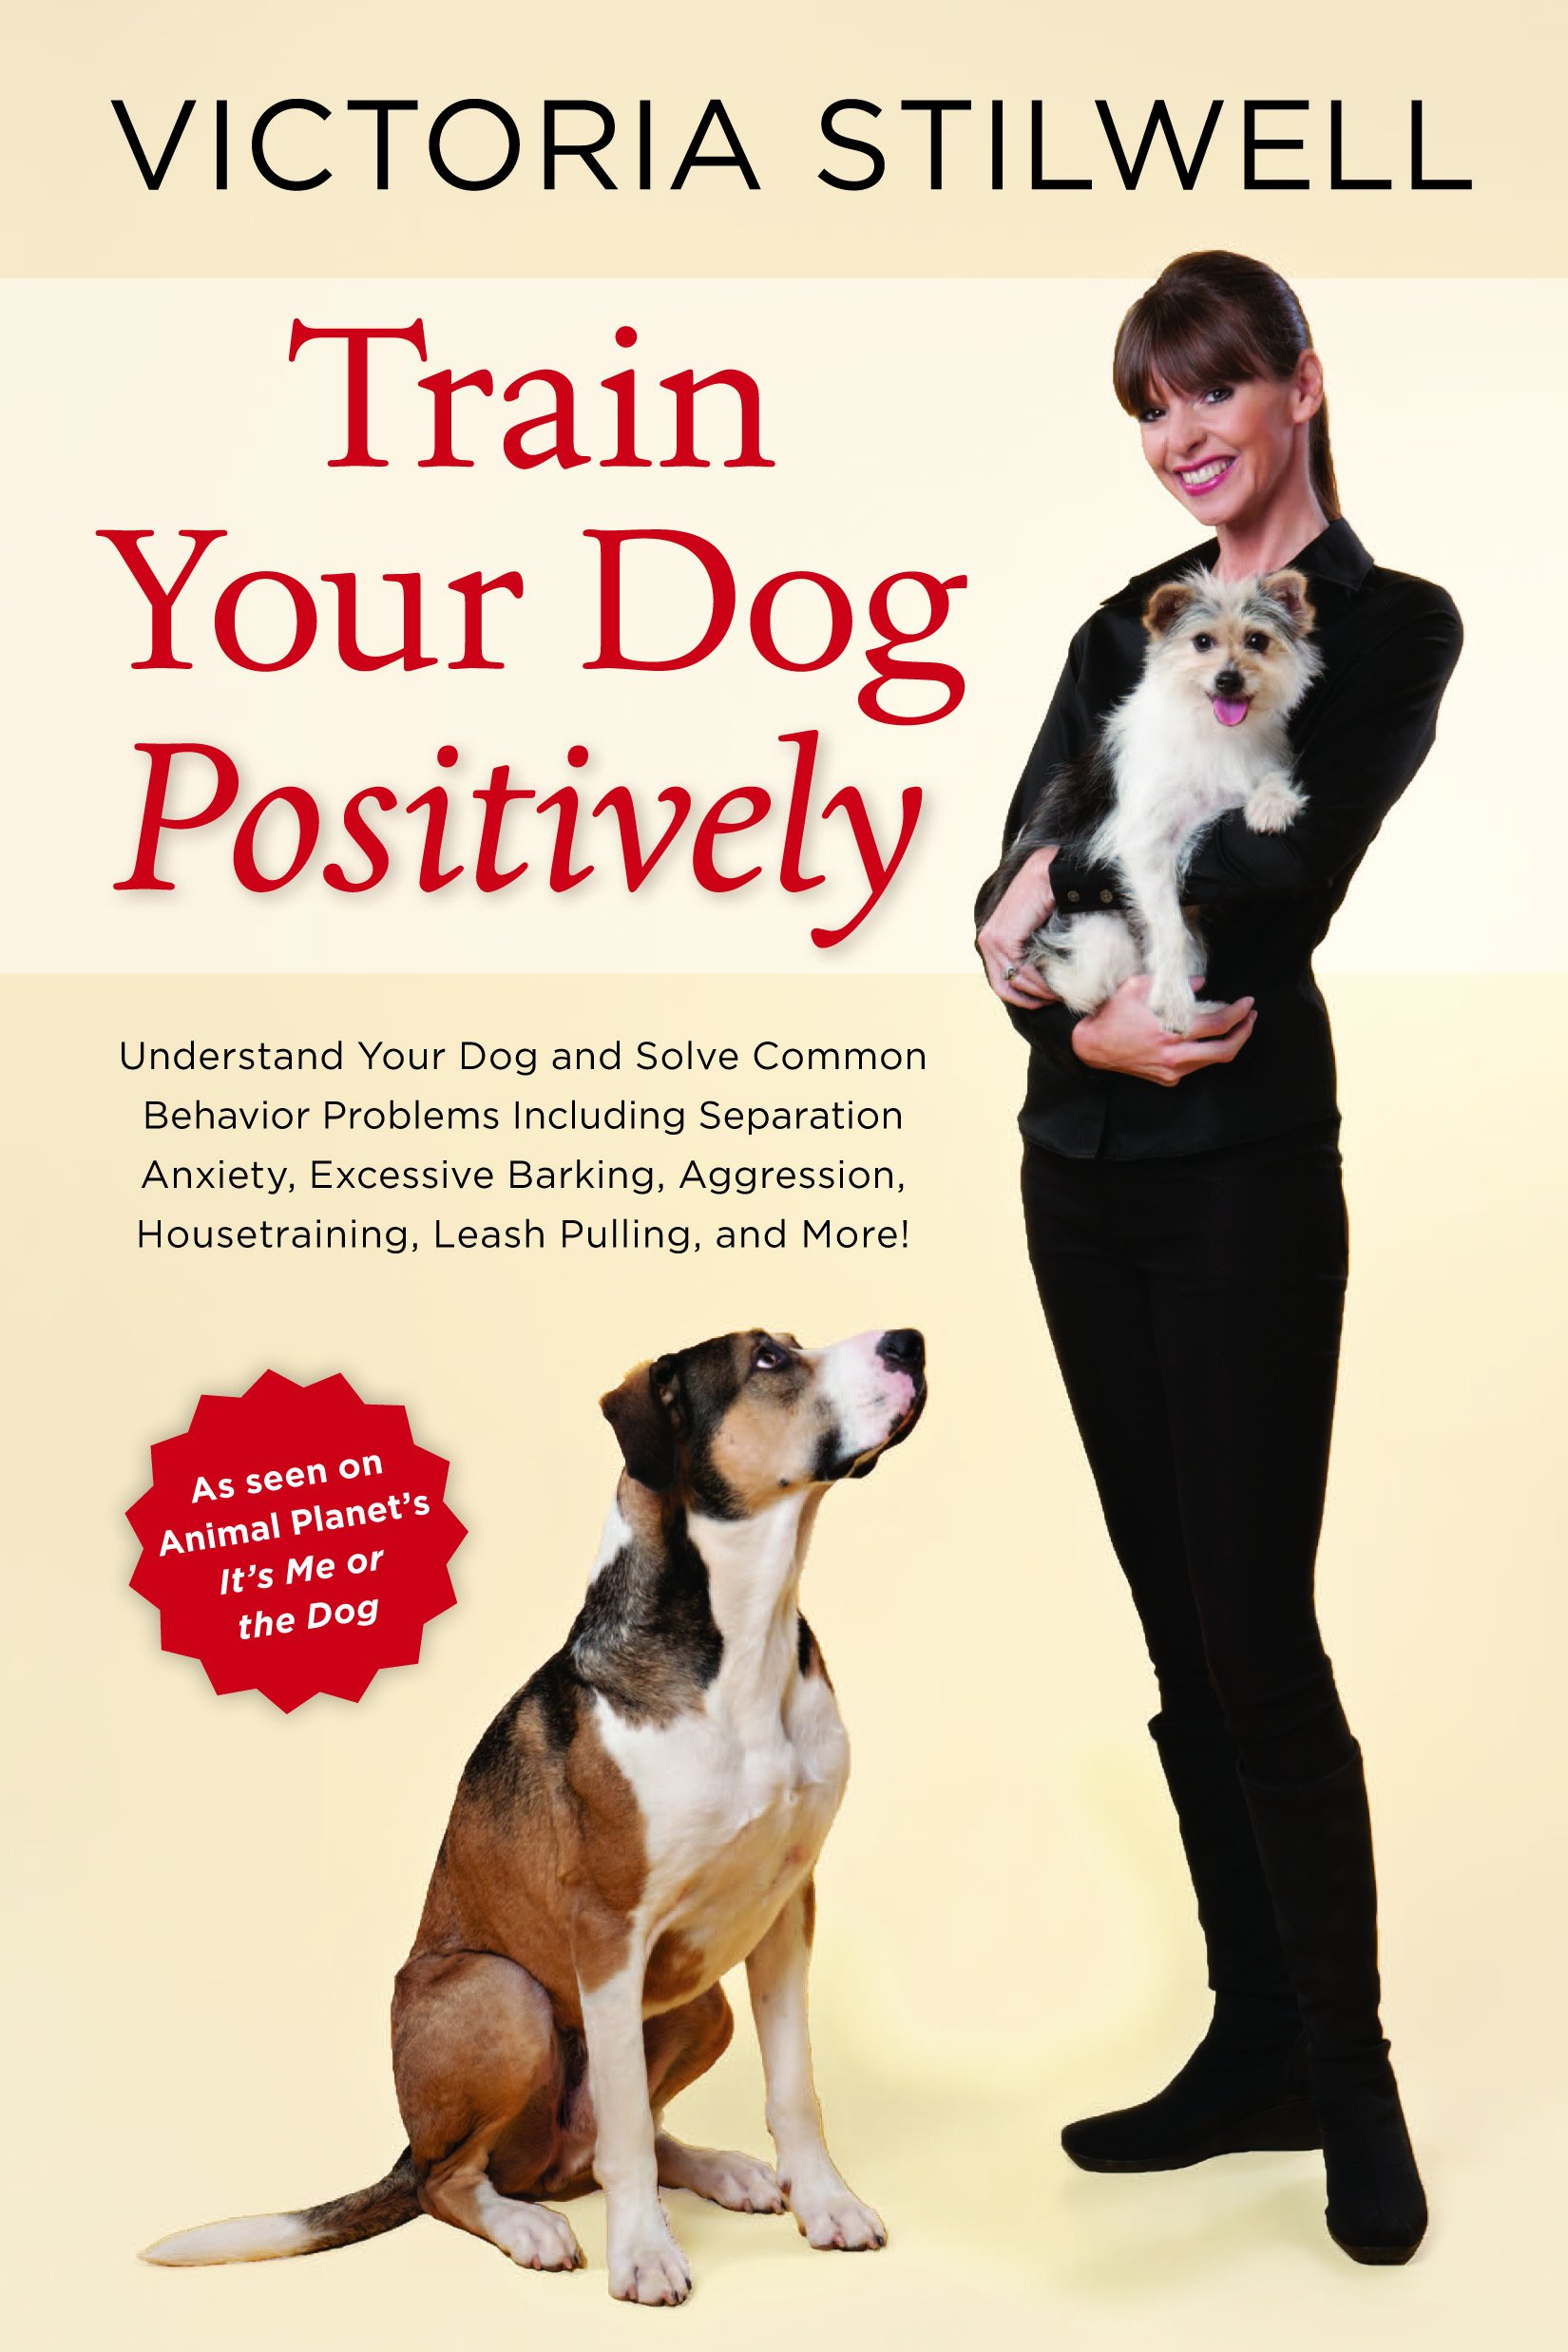 Train Your Dog Positively book